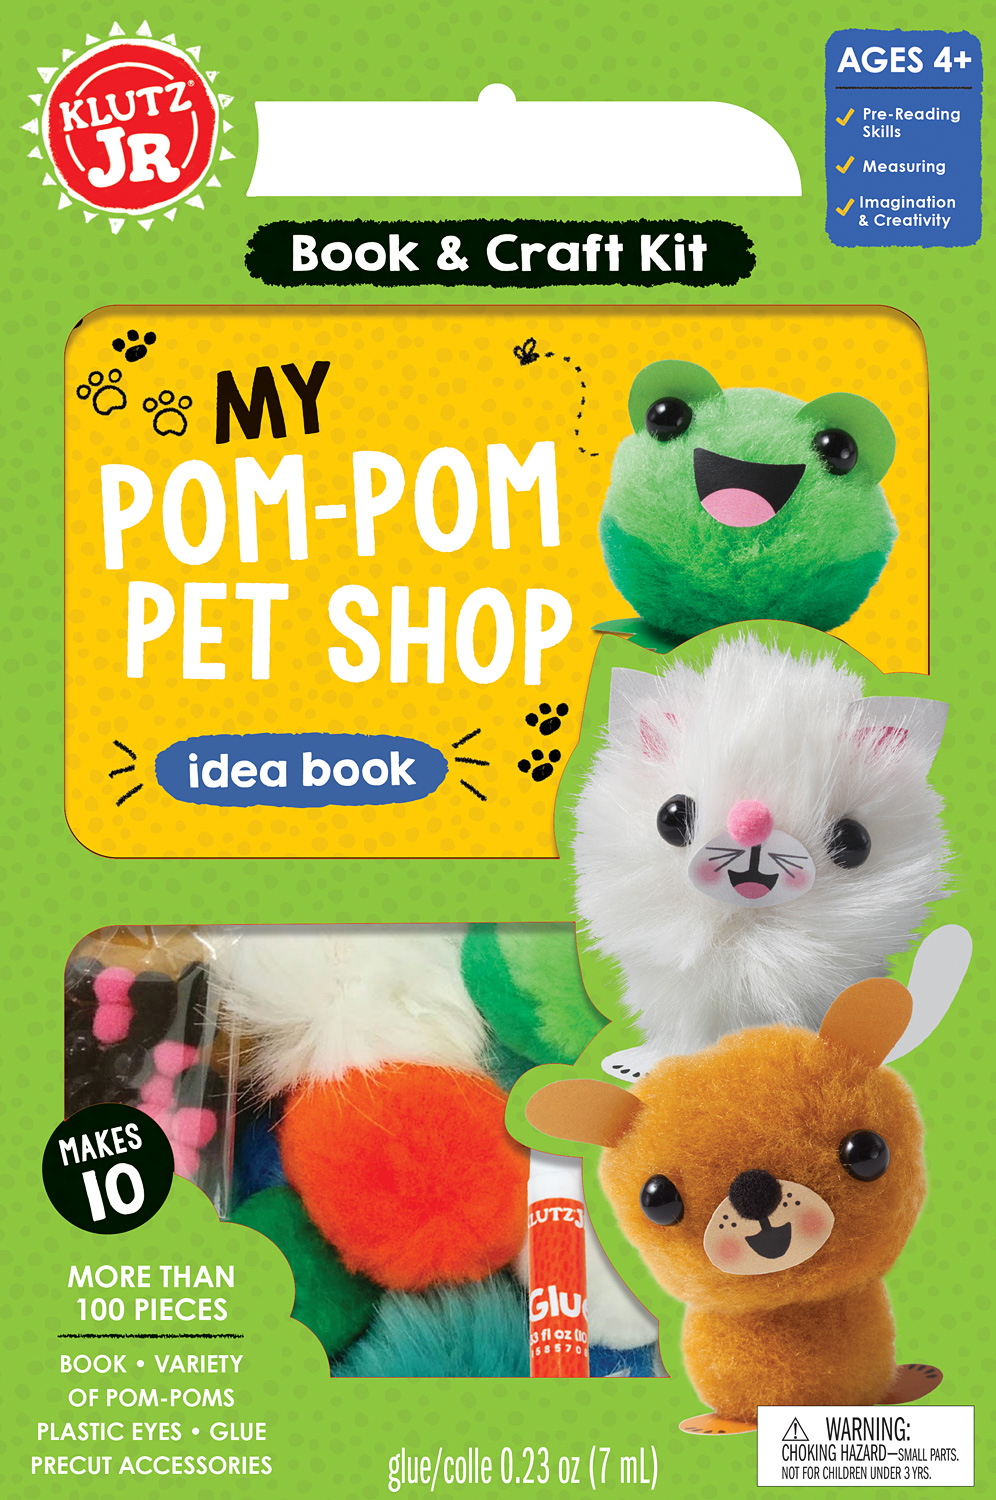 KLUTZ JR. MY POM-POM PET SHOP